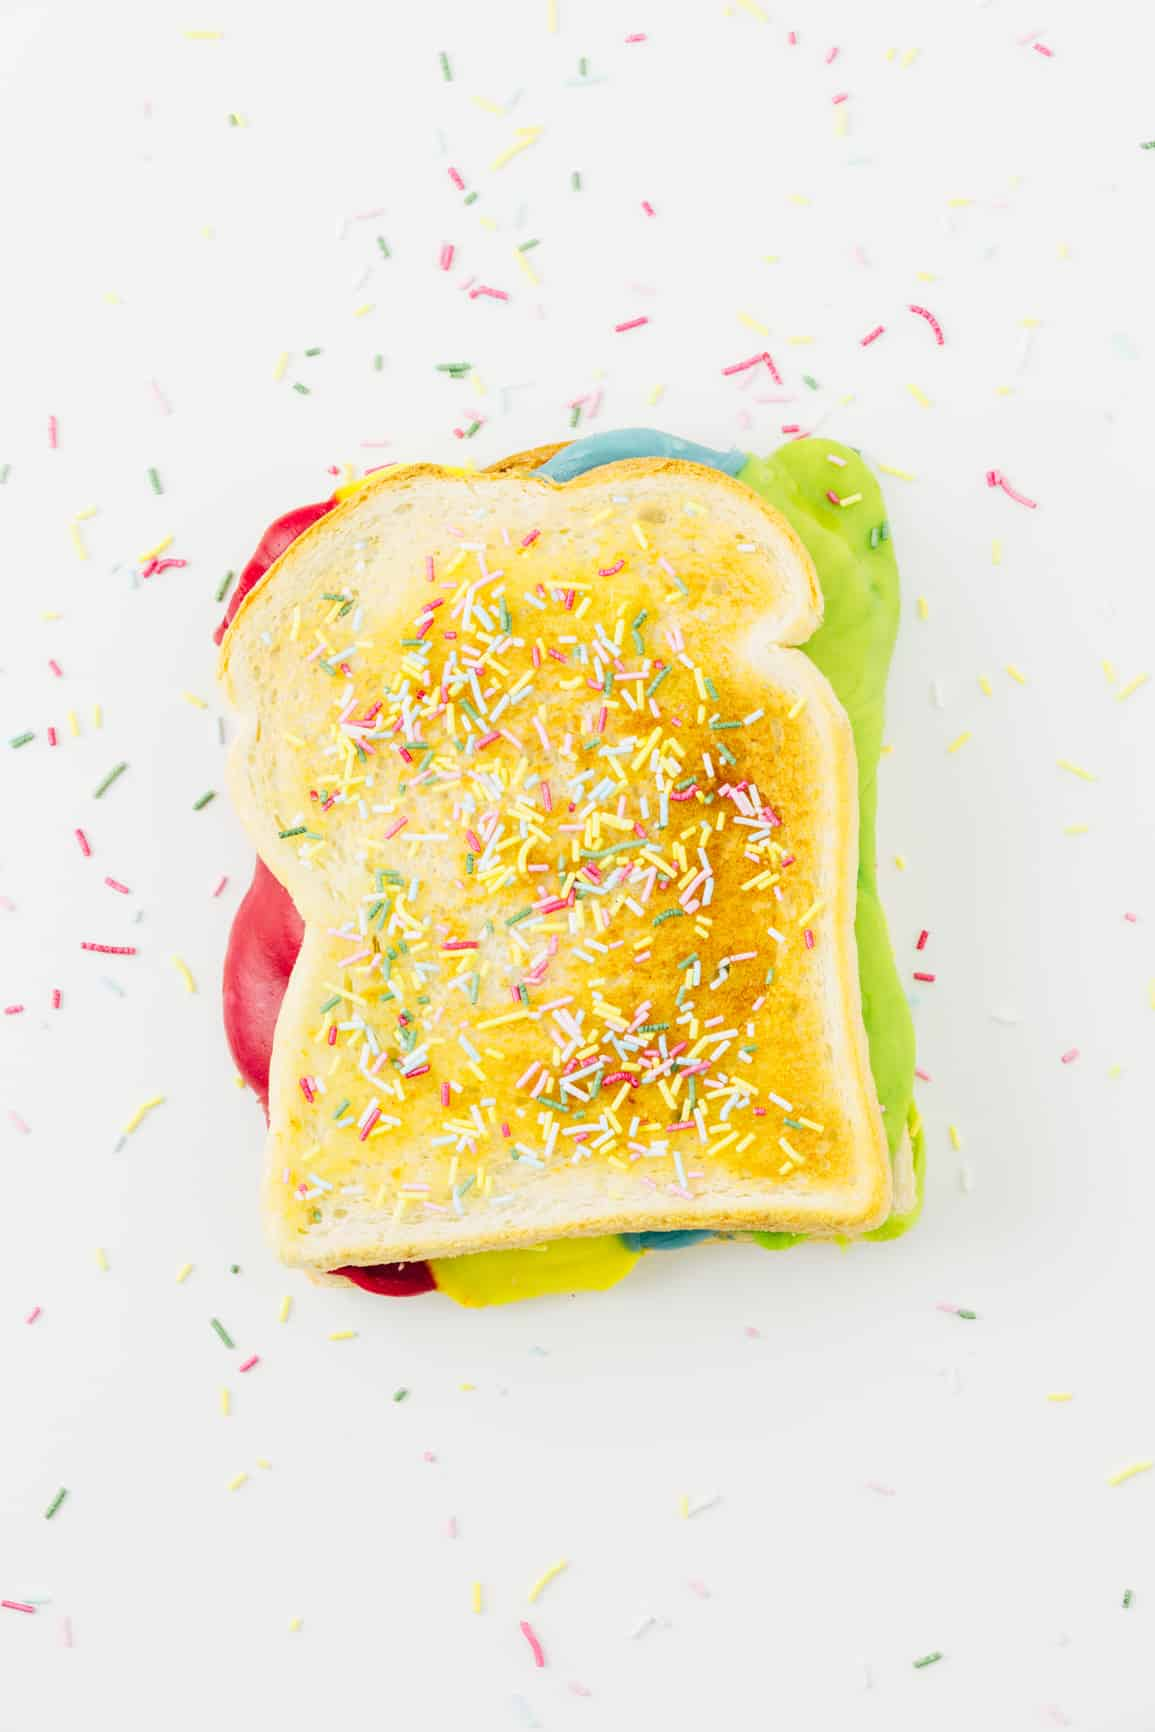 This rainbow-colored grilled cheese sandwich recipe is a fun twist on the classic grilled cheese sandwich and it's super easy to make. It should take no more than 10 minutes to make and pairs perfectly with a bowl of tomato soup to enjoy this fall and winter!